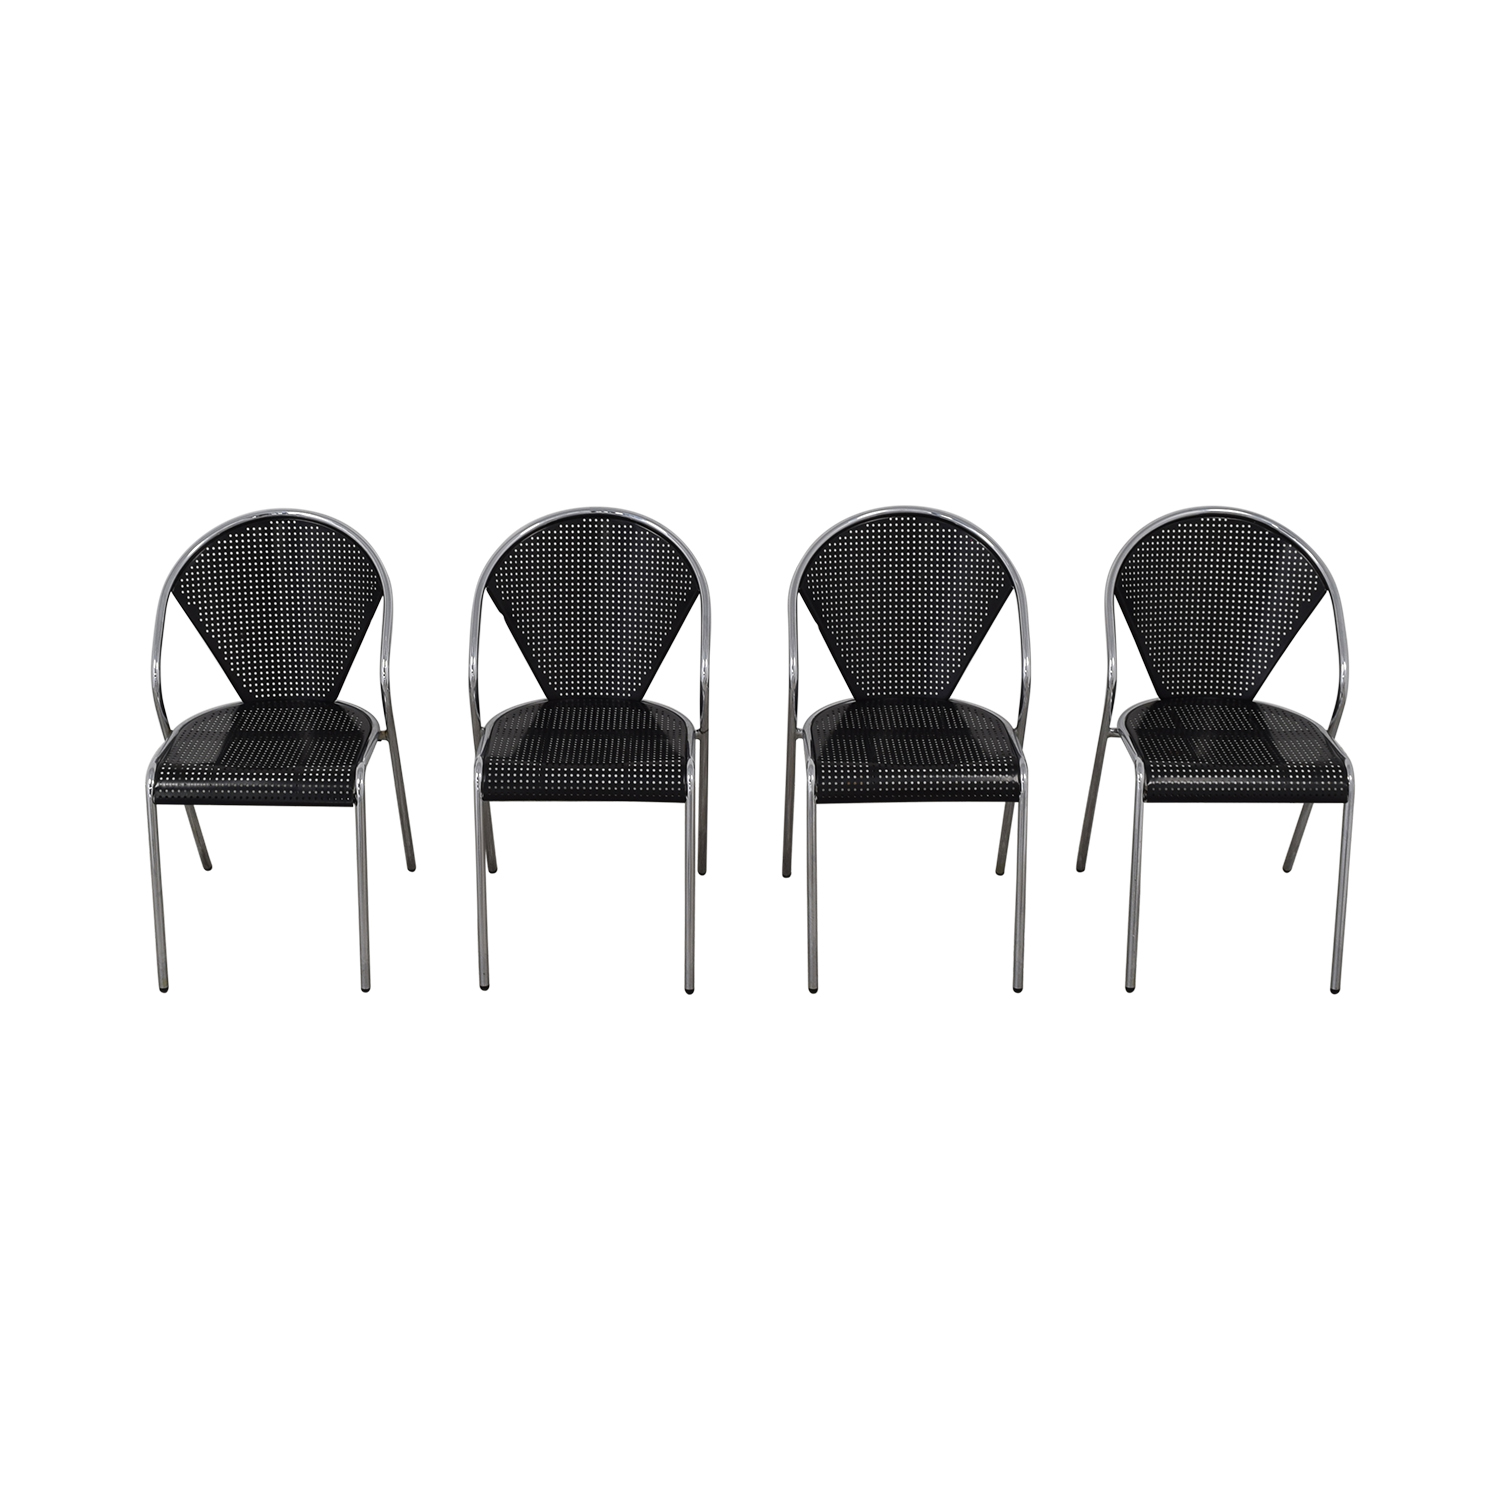 buy Manhattan Home Design Manhattan Home Design Protech Black Chairs online